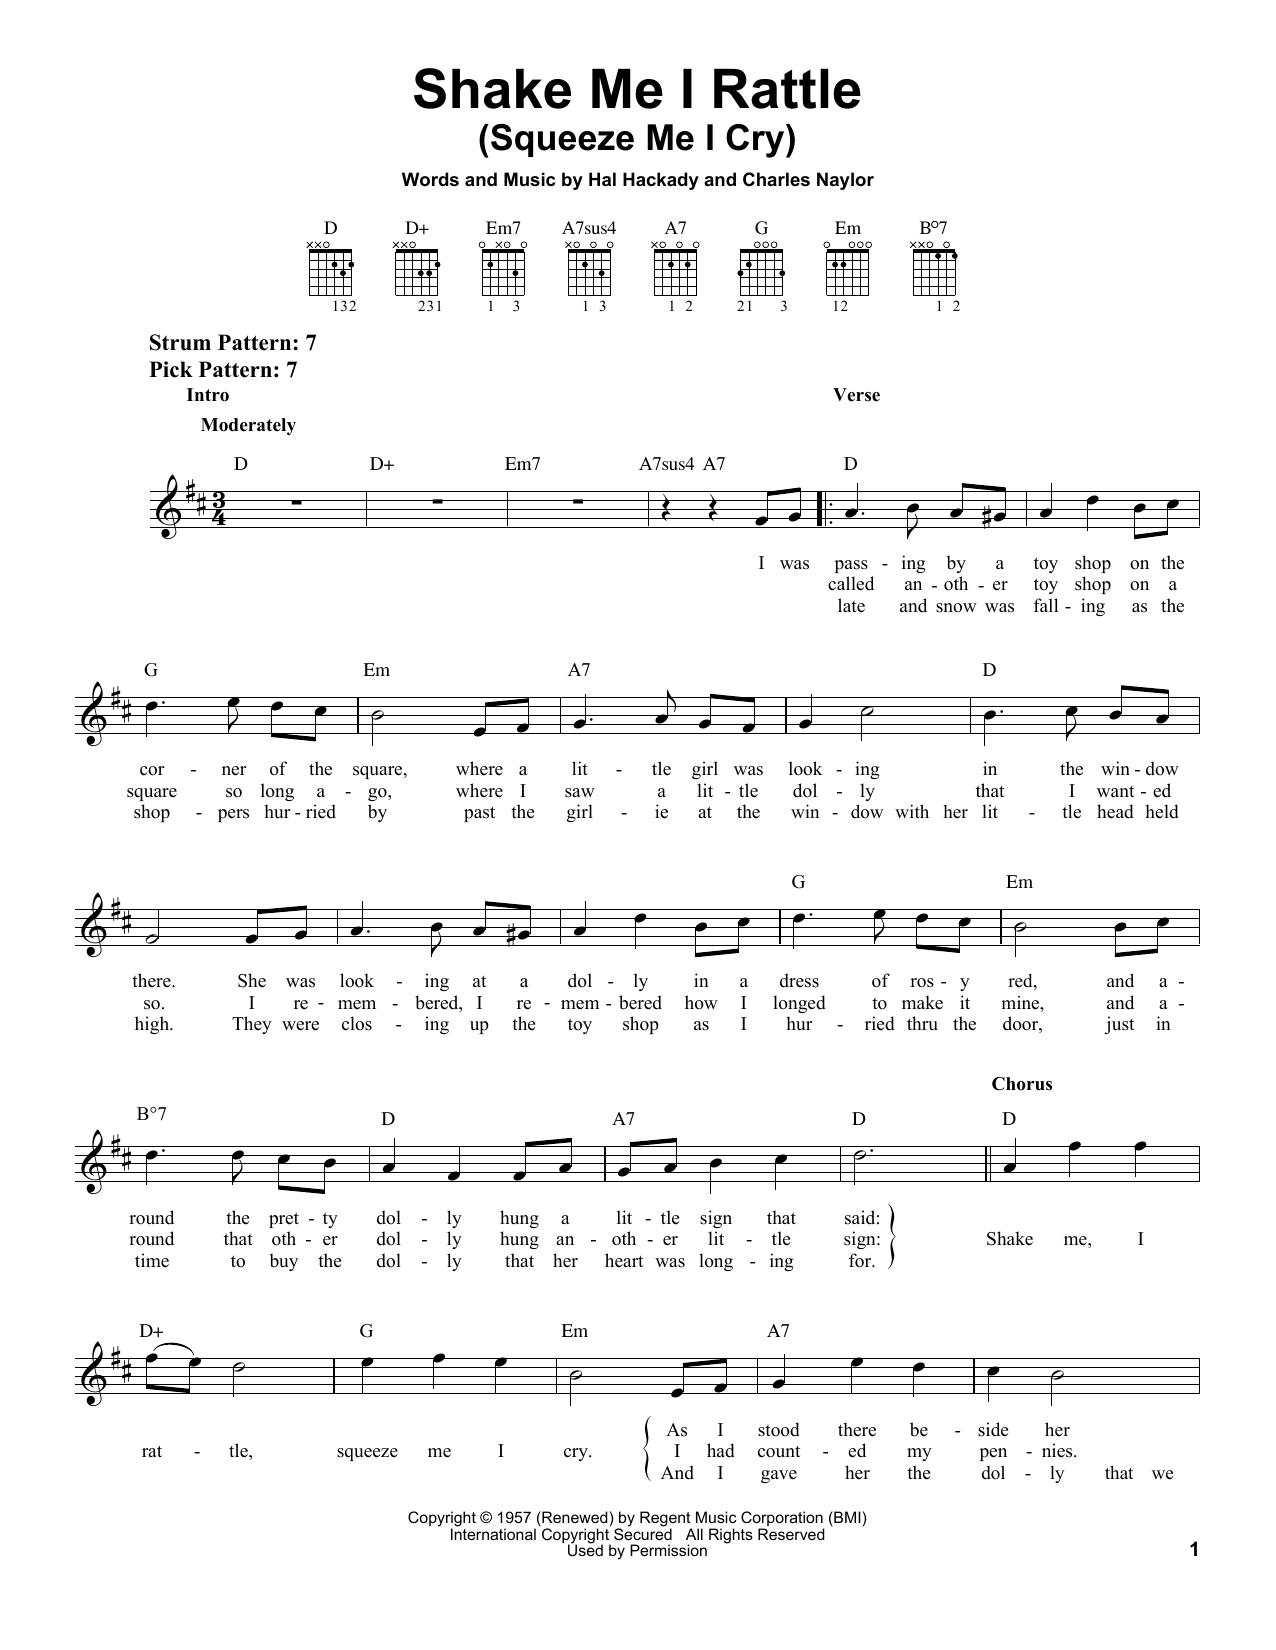 Marion Worth Shake Me I Rattle (Squeeze Me I Cry) sheet music notes and chords